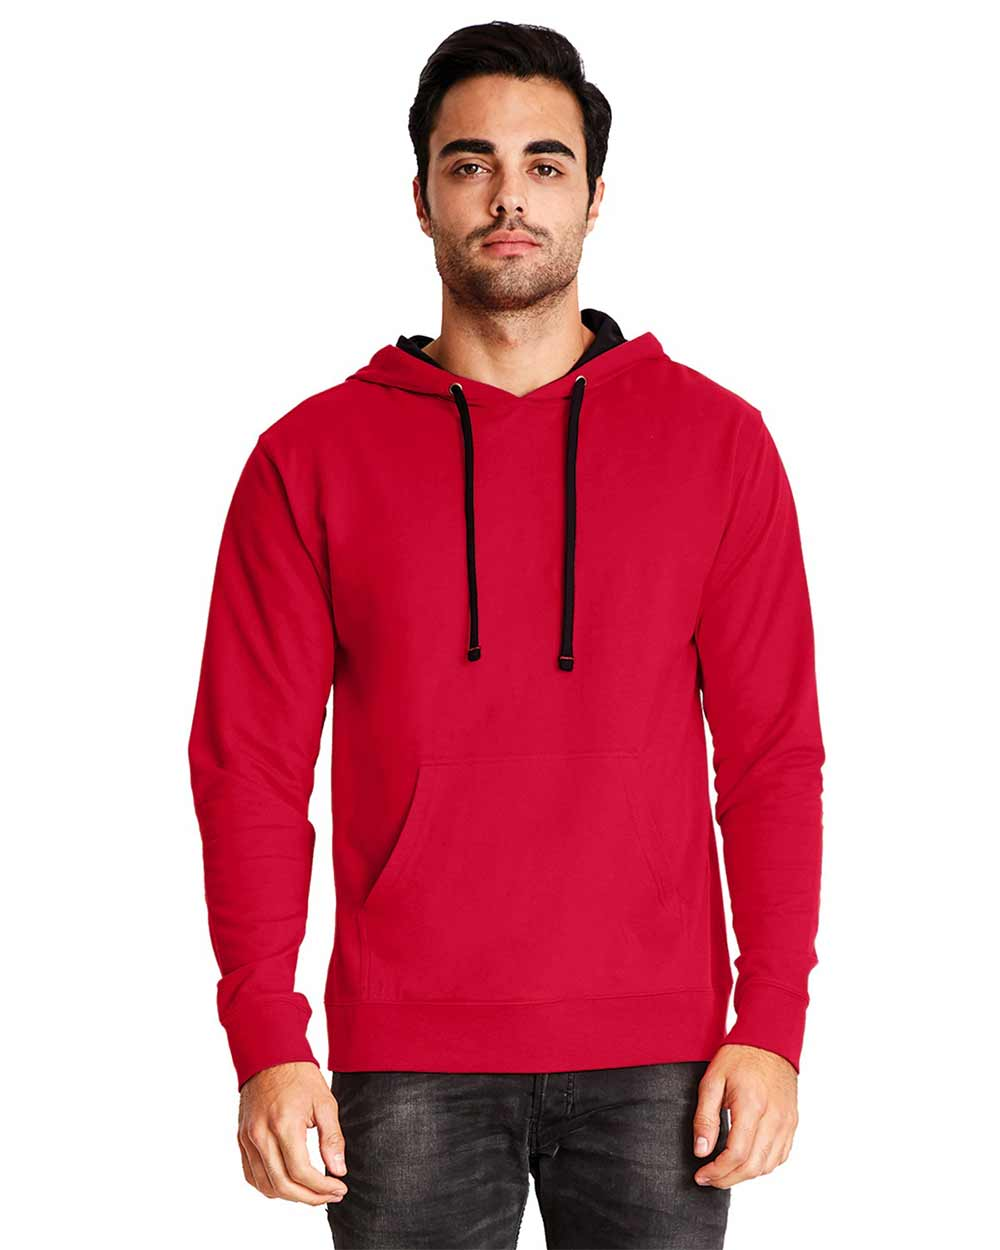 Next Level 9301 - Unisex French Terry Pullover Hooded Sweatshirt